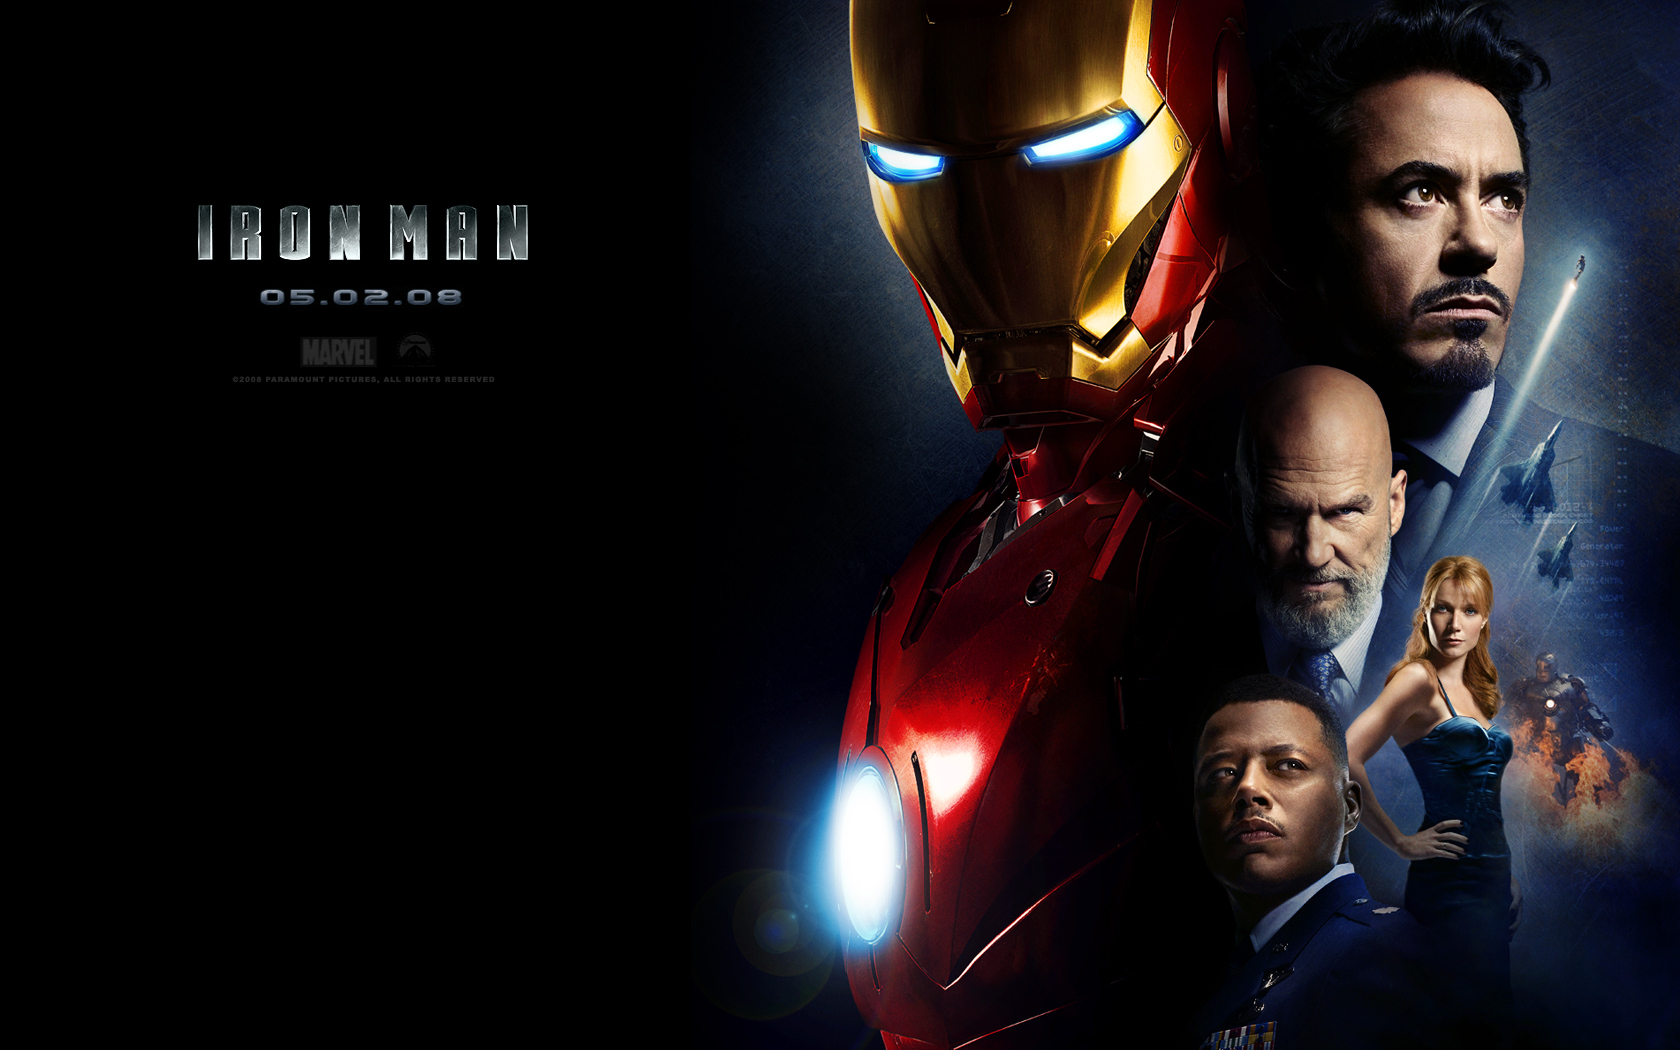 Iron man images new wallpaper hd wallpaper and background photos 948765 - Iron man 1 images ...